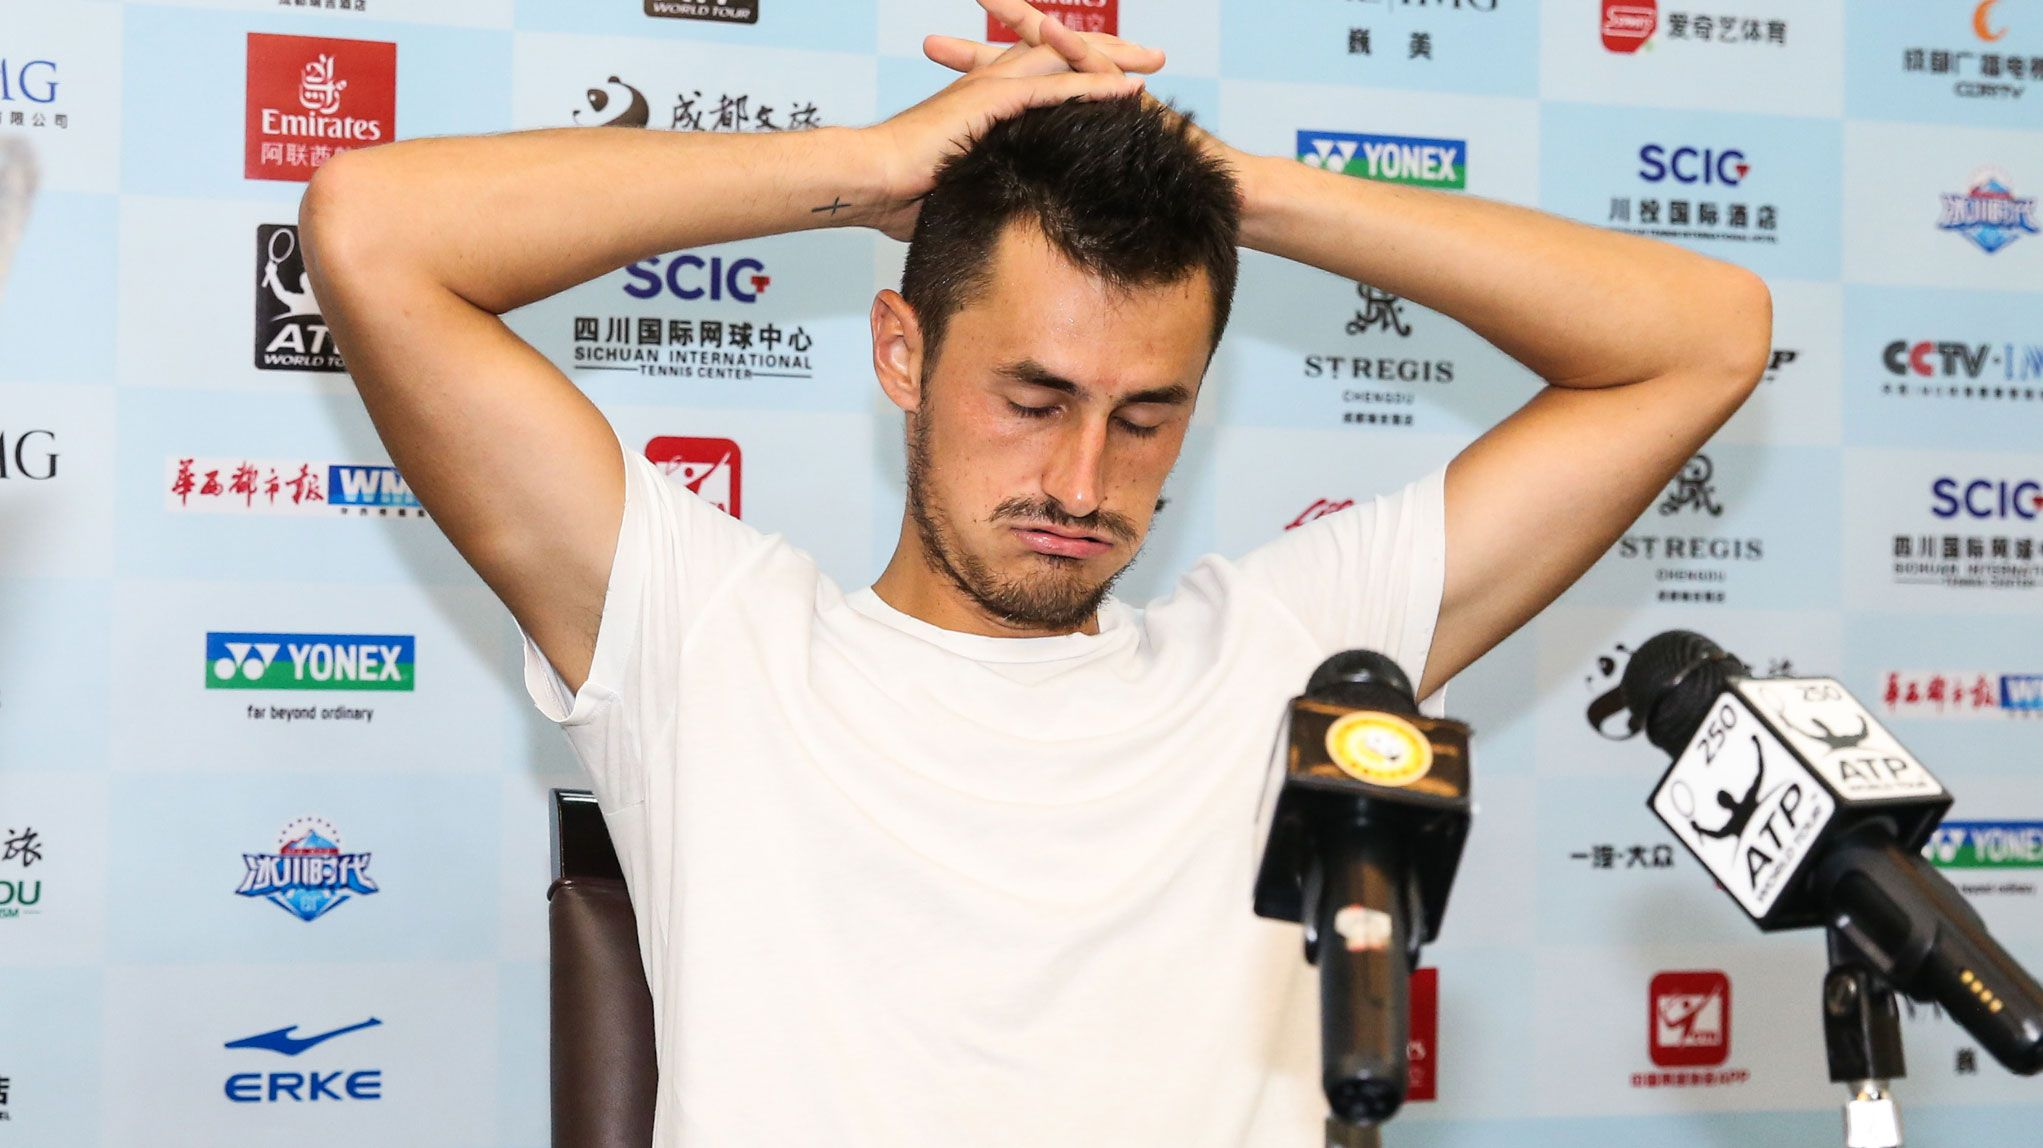 Linda Pearce: The incredible career recovery of Bernard Tomic after 'I'm A Celebrity' rock bottom